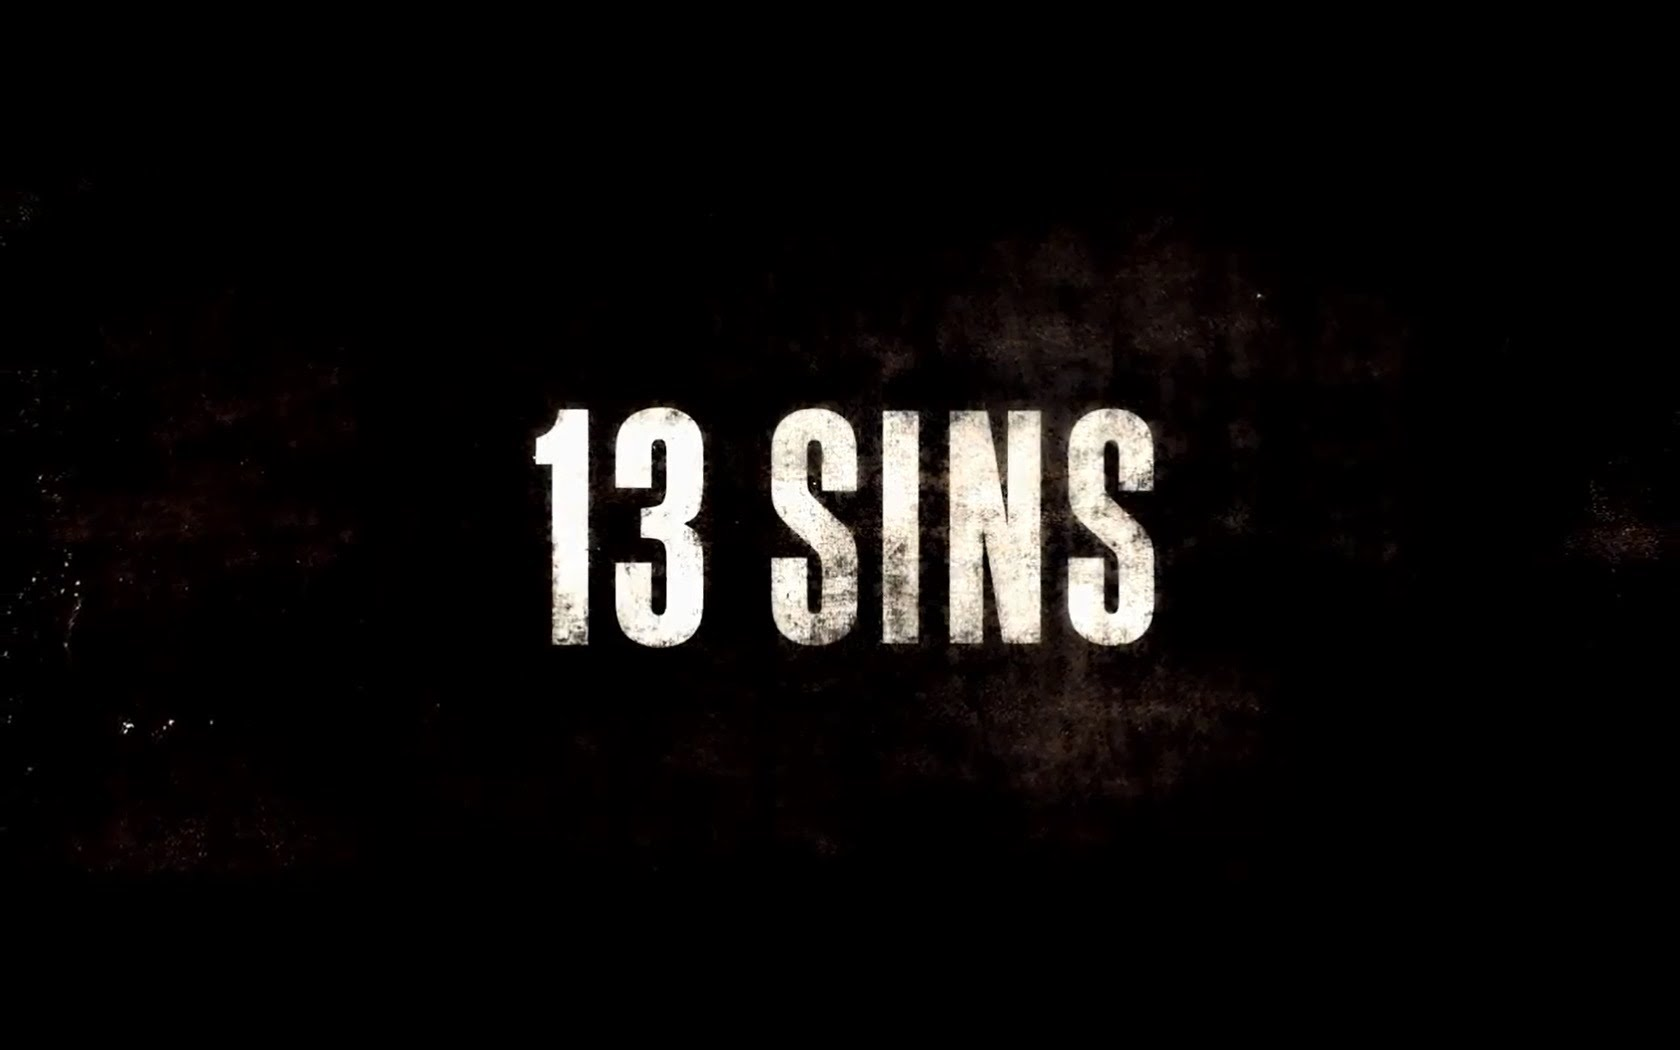 Nice wallpapers 13 Sins 1680x1050px